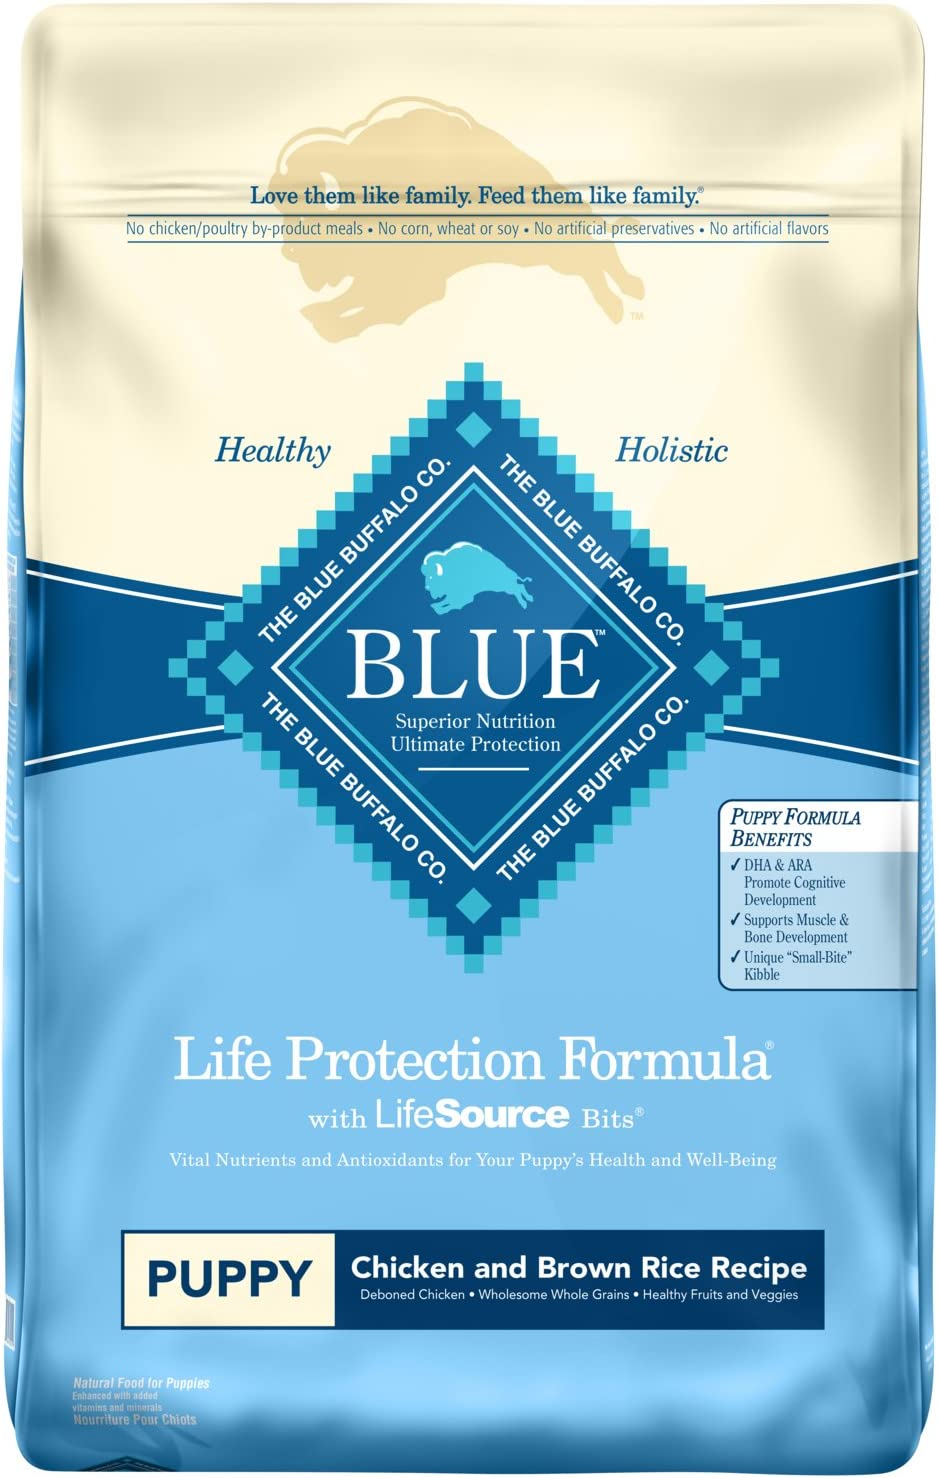 Blue Buffalo with Protection Formula